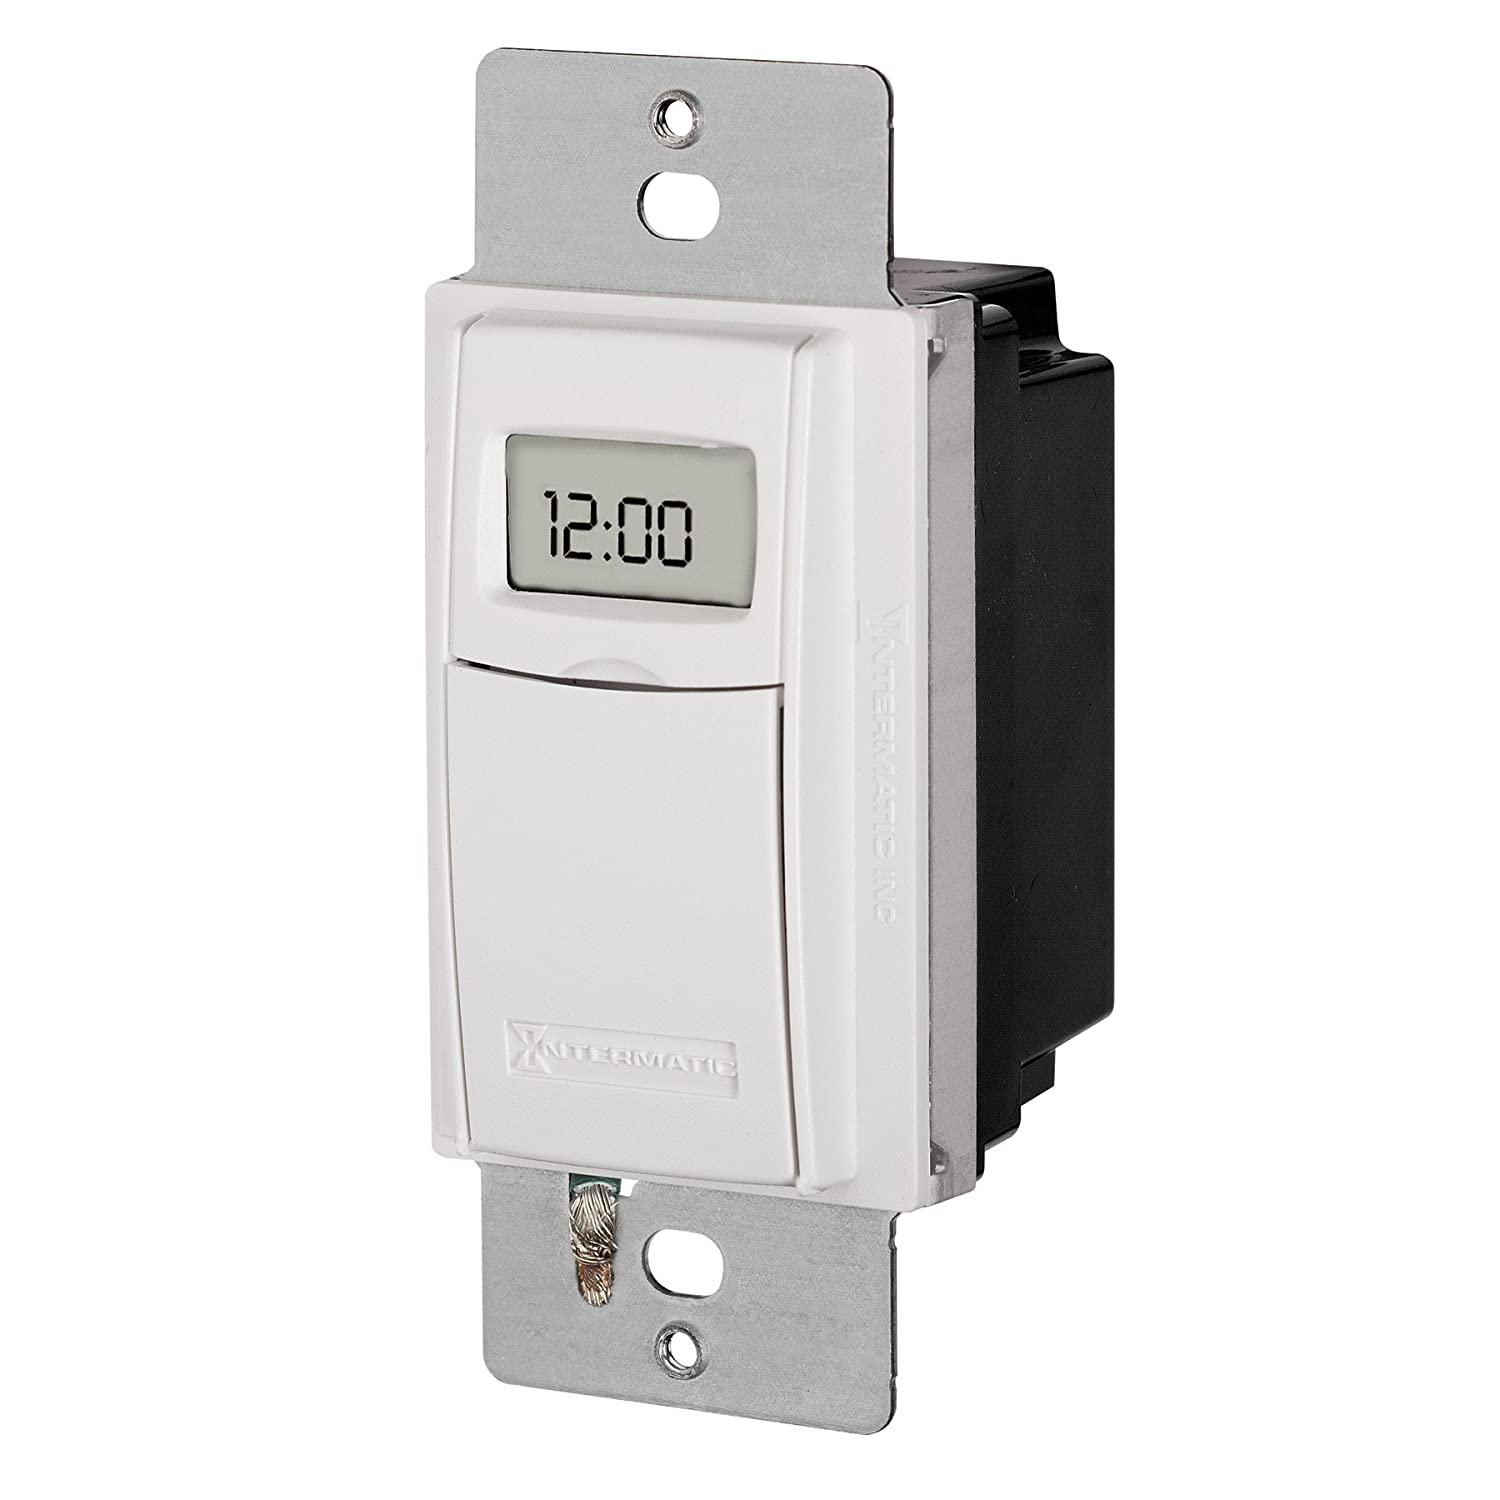 Intermatic ST01 7 Day Programmable In Wall Digital Timer Switch for ...